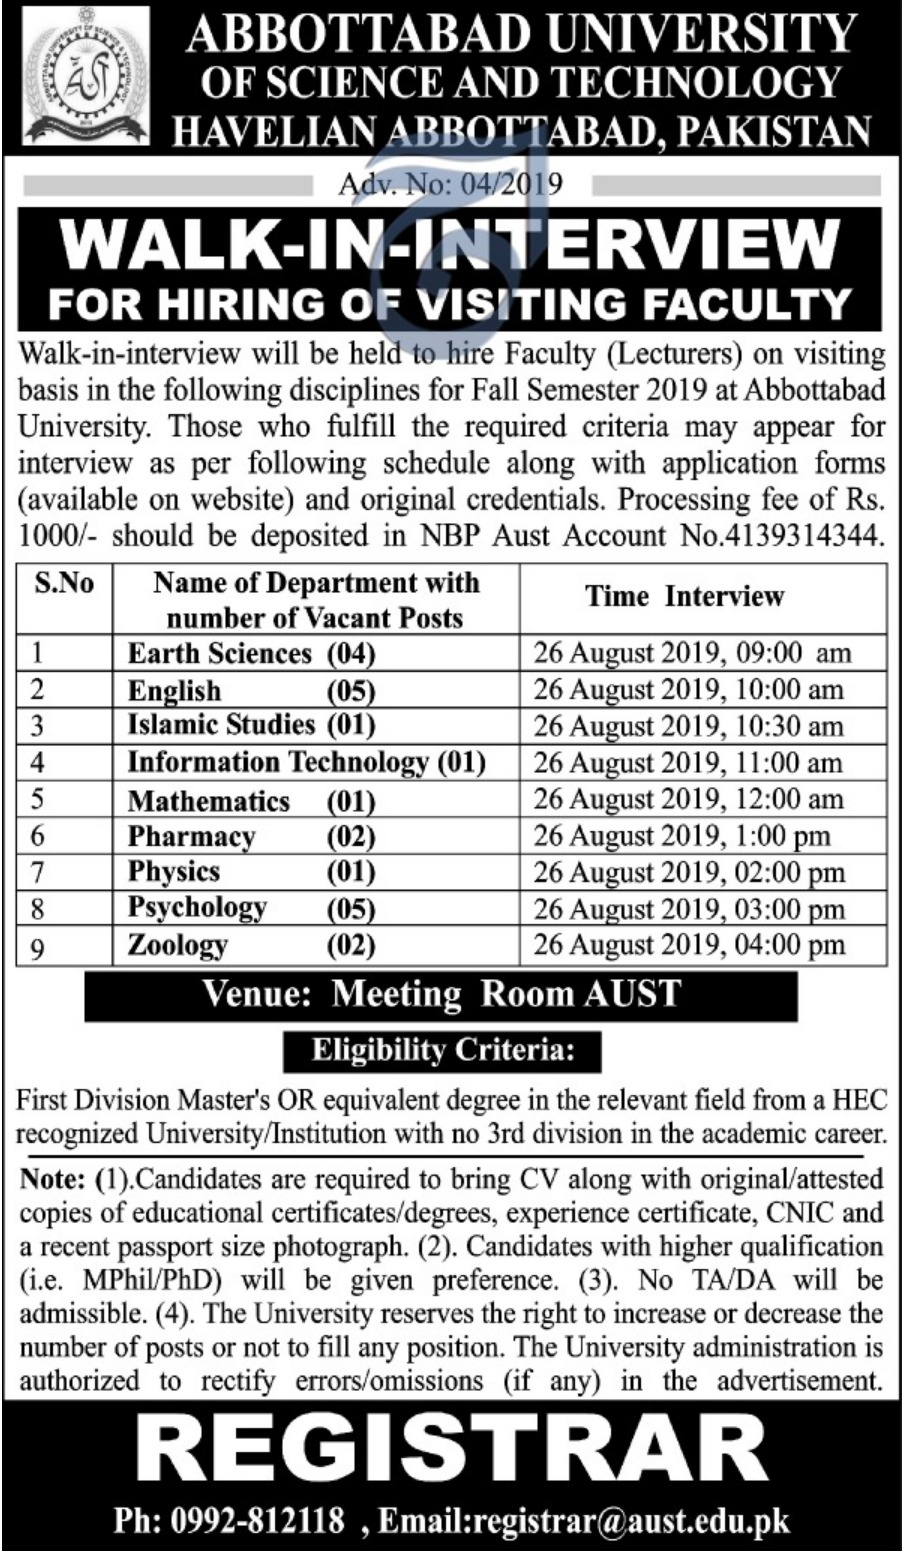 Abbottabad University of Science & Technology AUST Jobs 2019 Walk-In-Interview